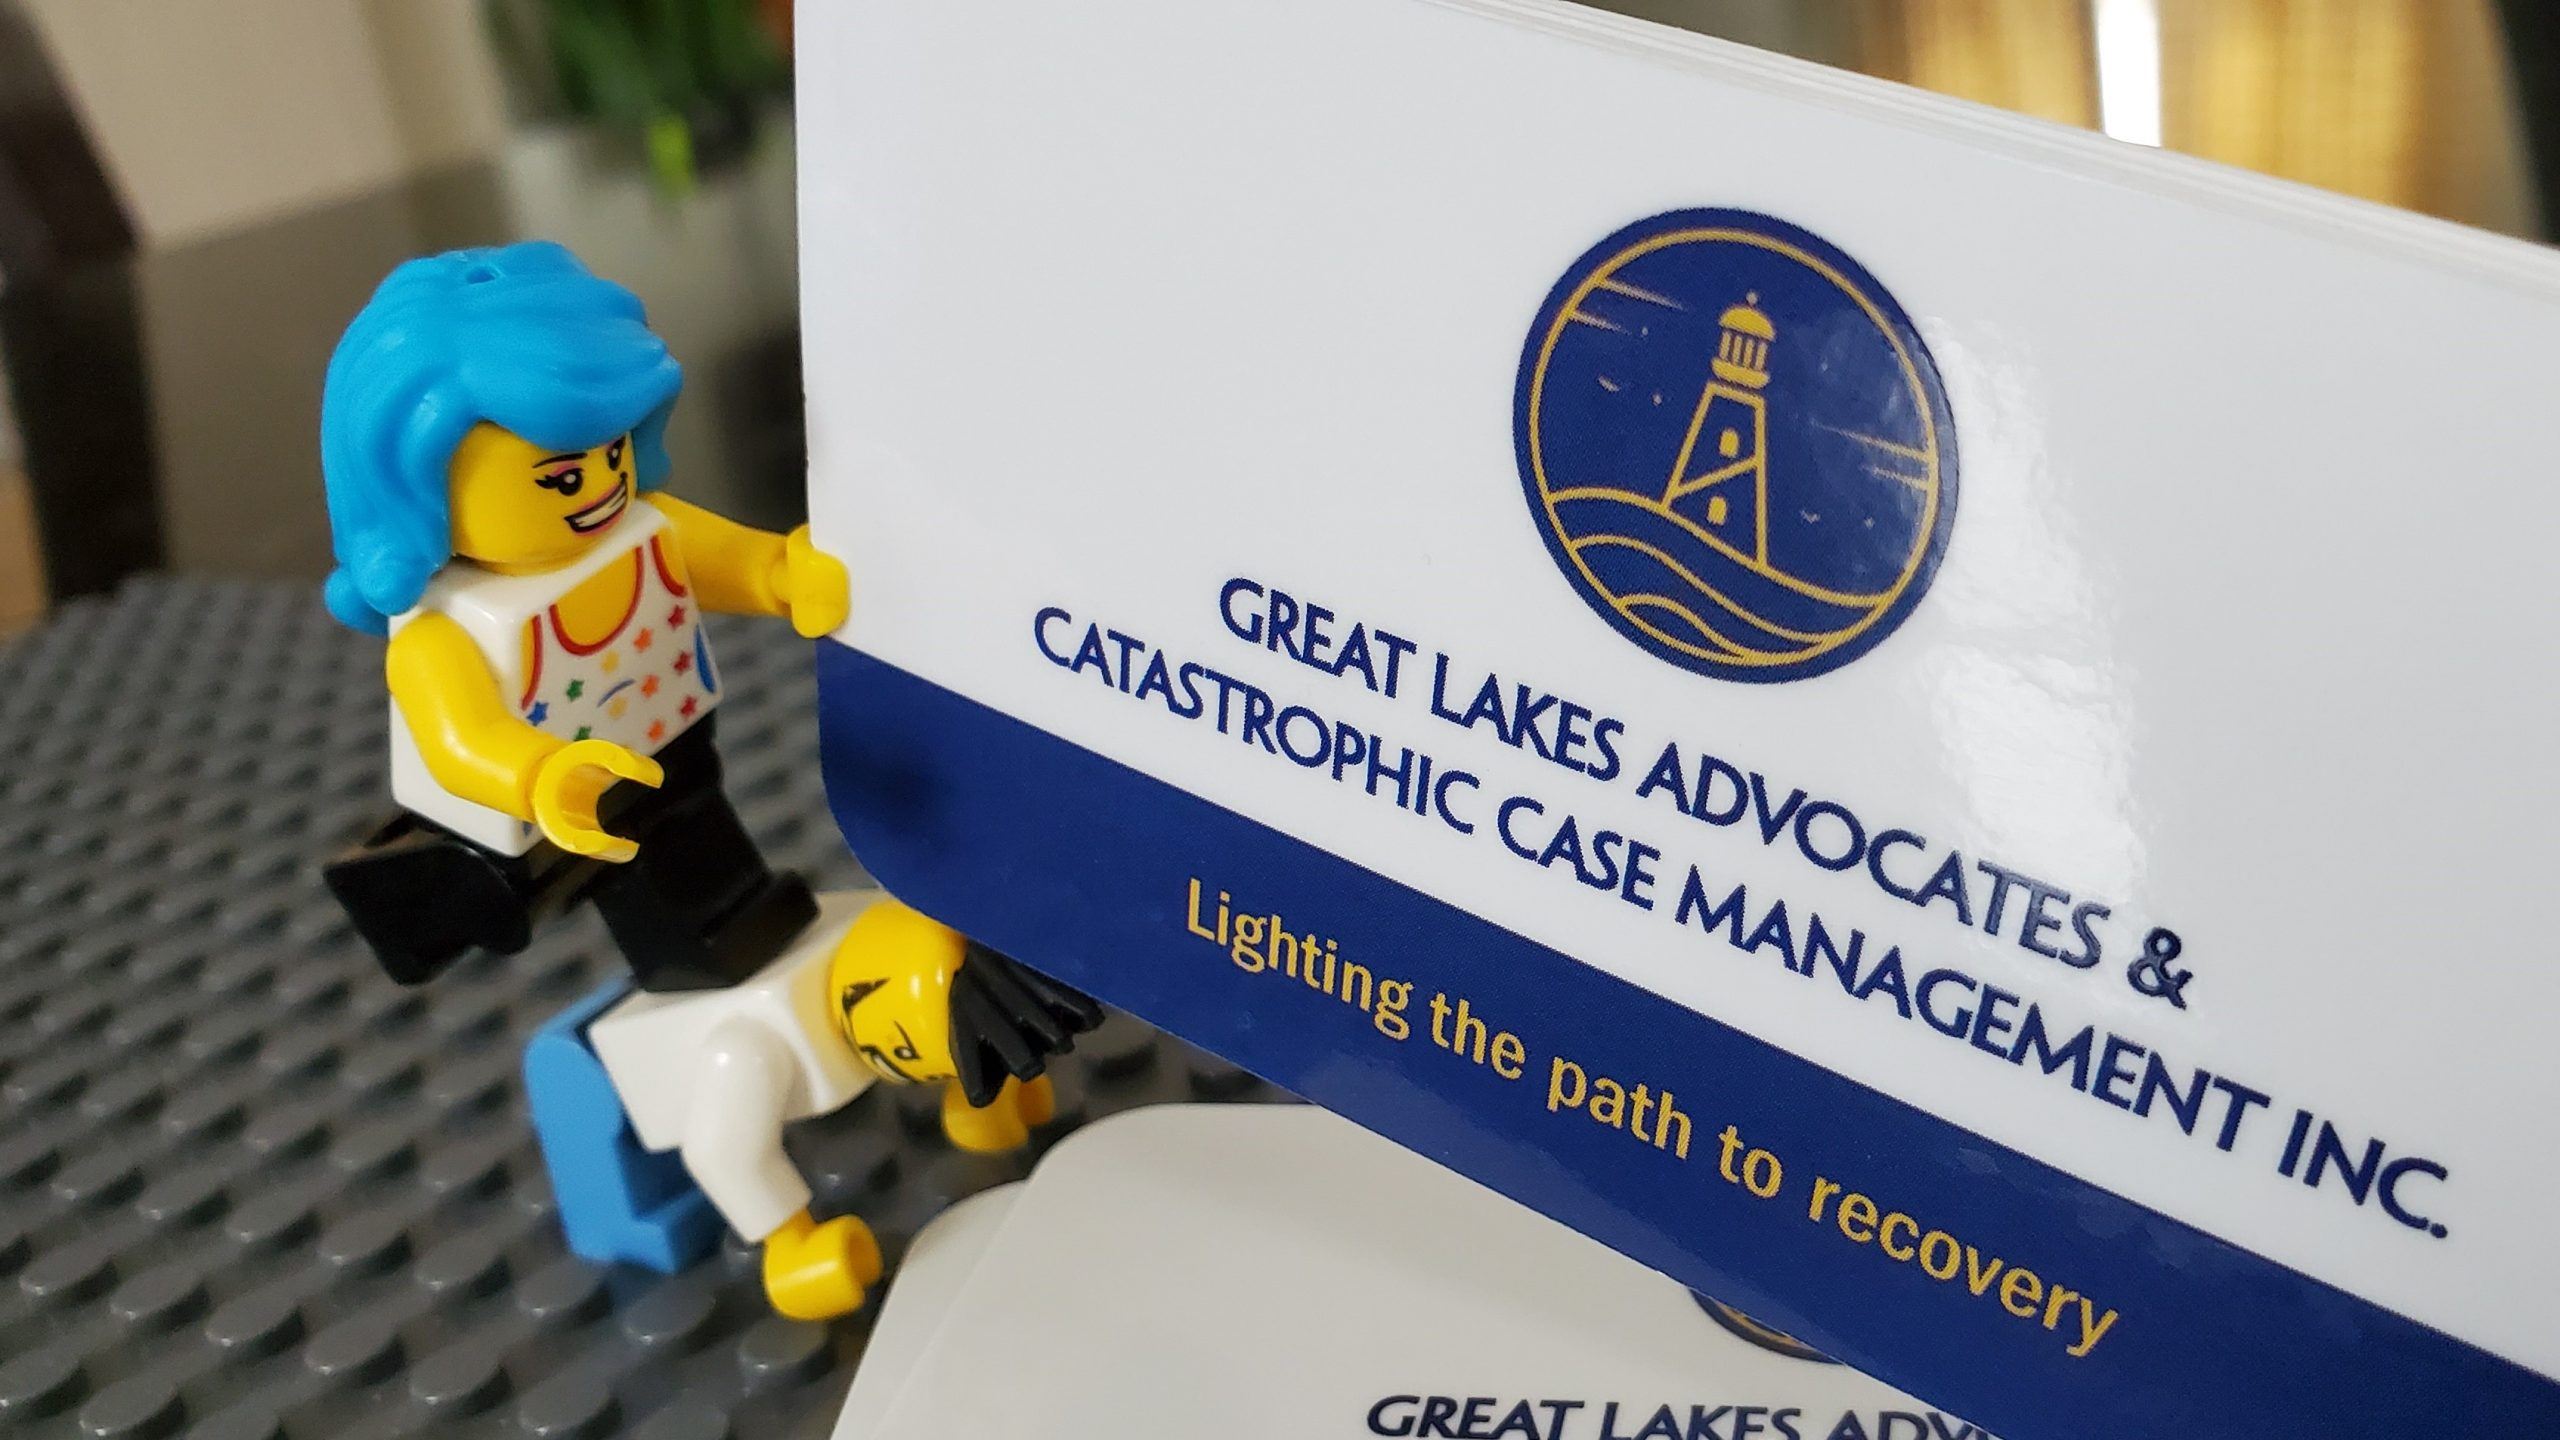 Great Lakes - Business Card Lego 03